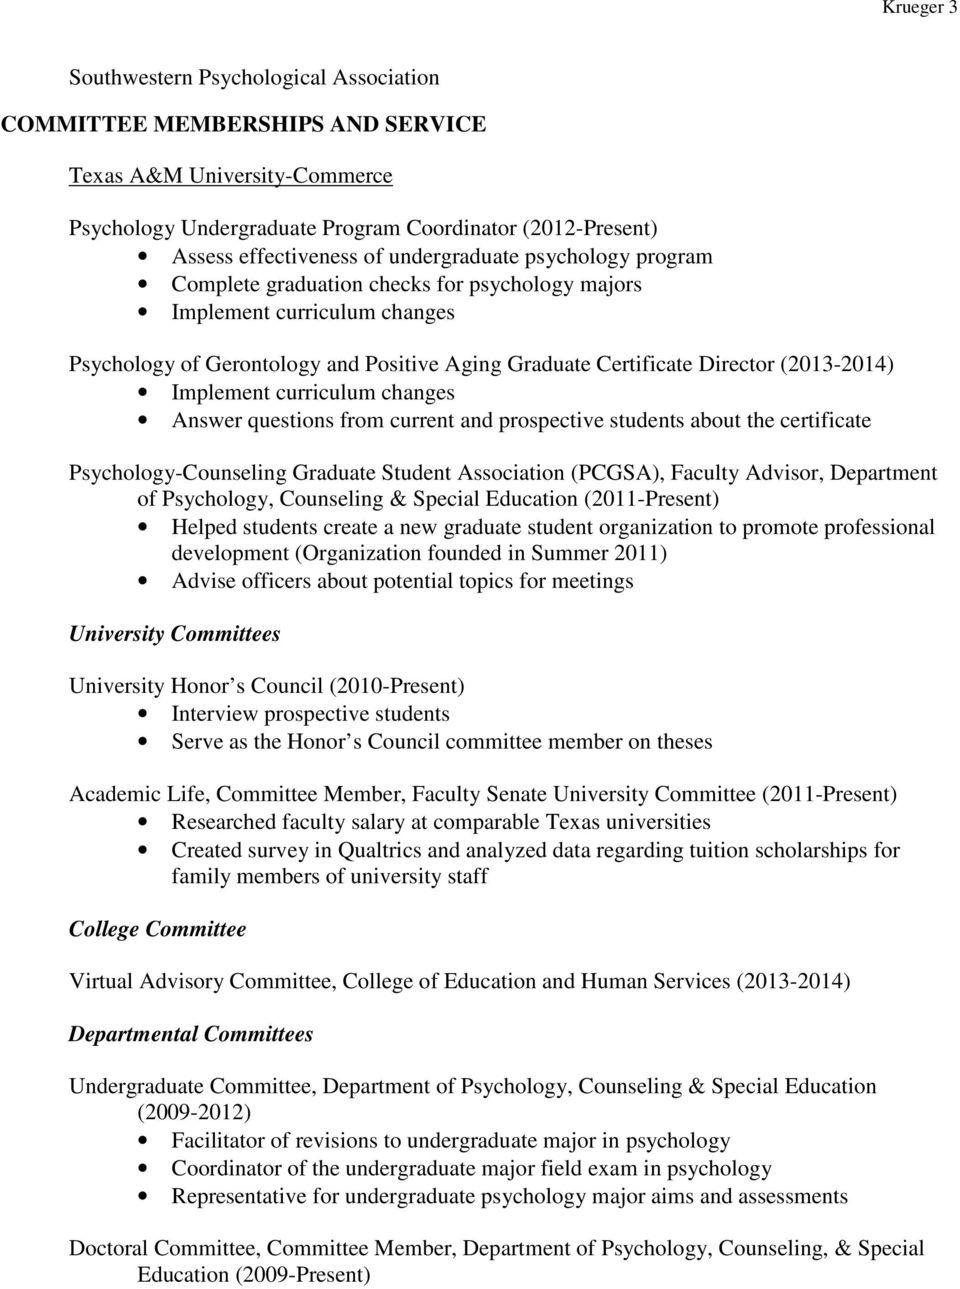 Implement curriculum changes Answer questions from current and prospective students about the certificate Psychology-Counseling Graduate Student Association (PCGSA), Faculty Advisor, Department of